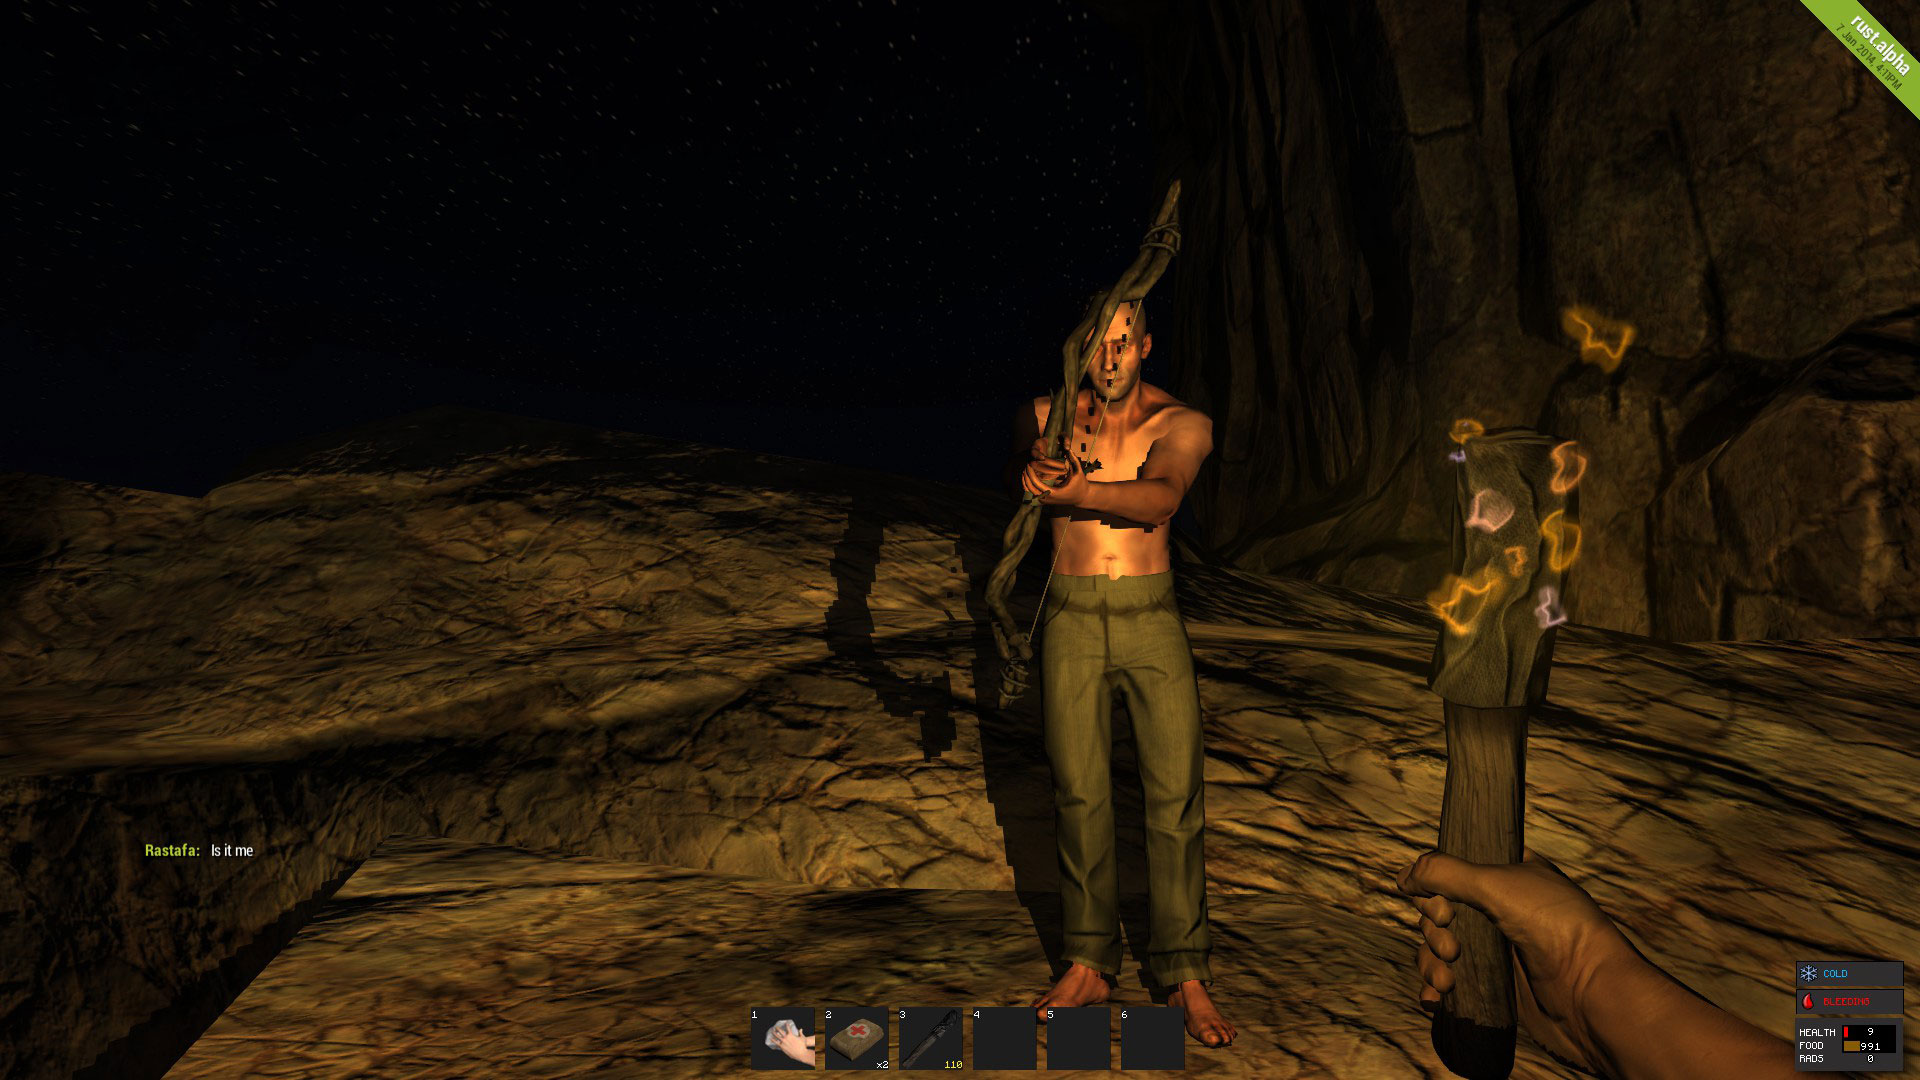 Survival game Rust from Facepunch Studios is a surprise hit on Steam.